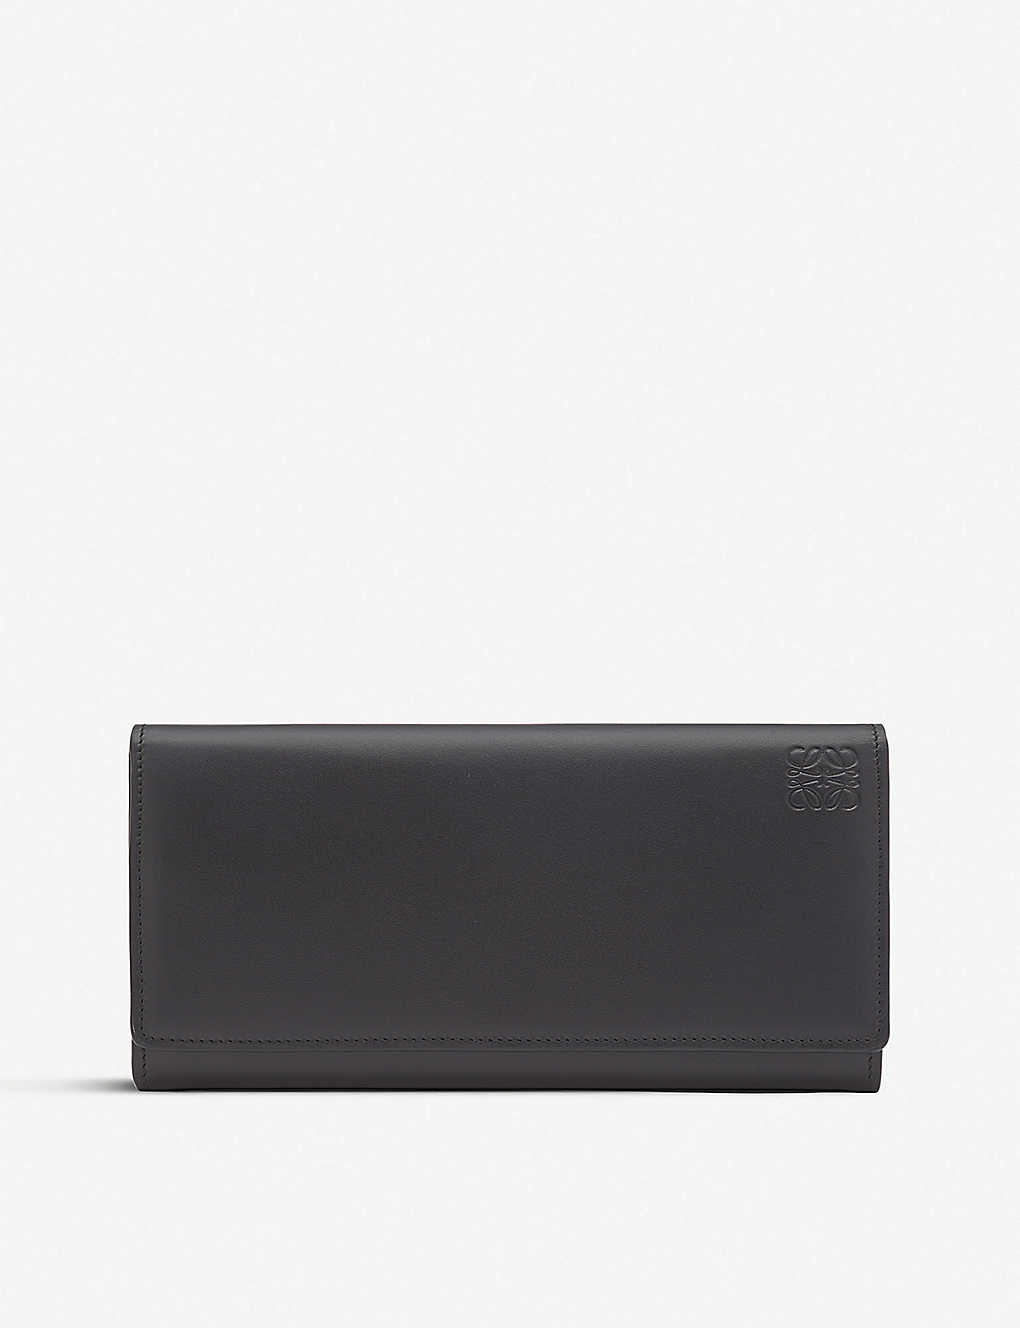 3535eeab87 LOEWE - Rainbow continental leather wallet | Selfridges.com